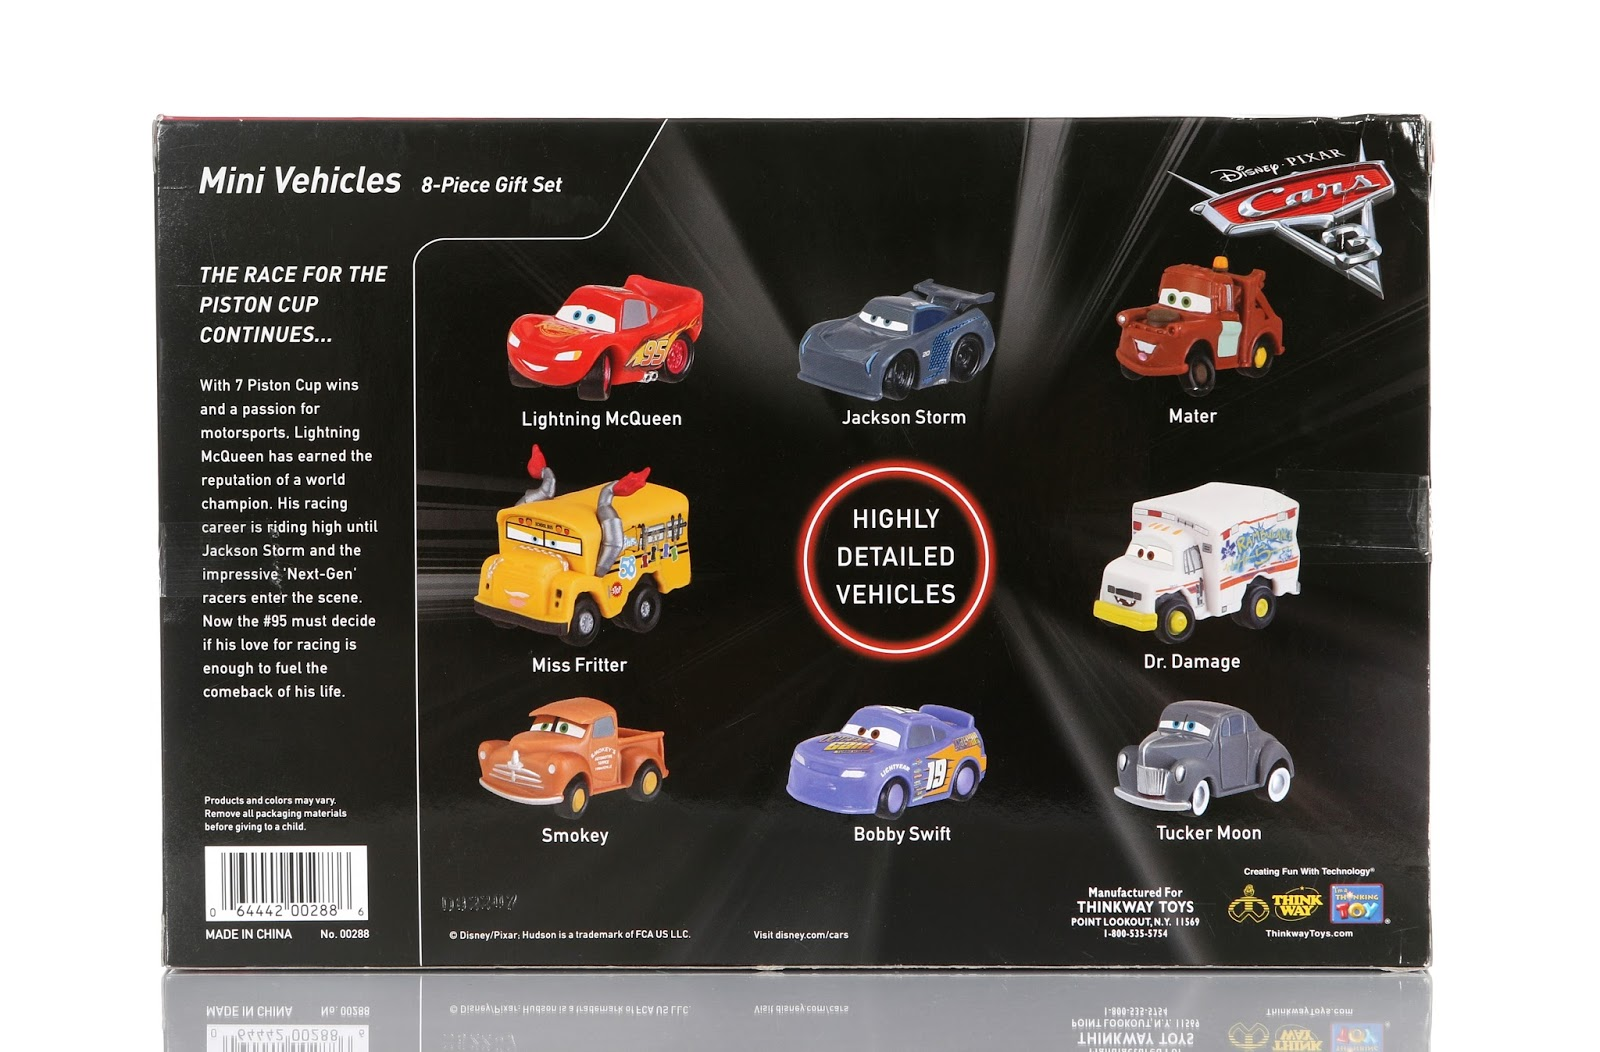 Cars 3 Mini Vehicles 8-Piece Gift Set (Thinkway Toys)